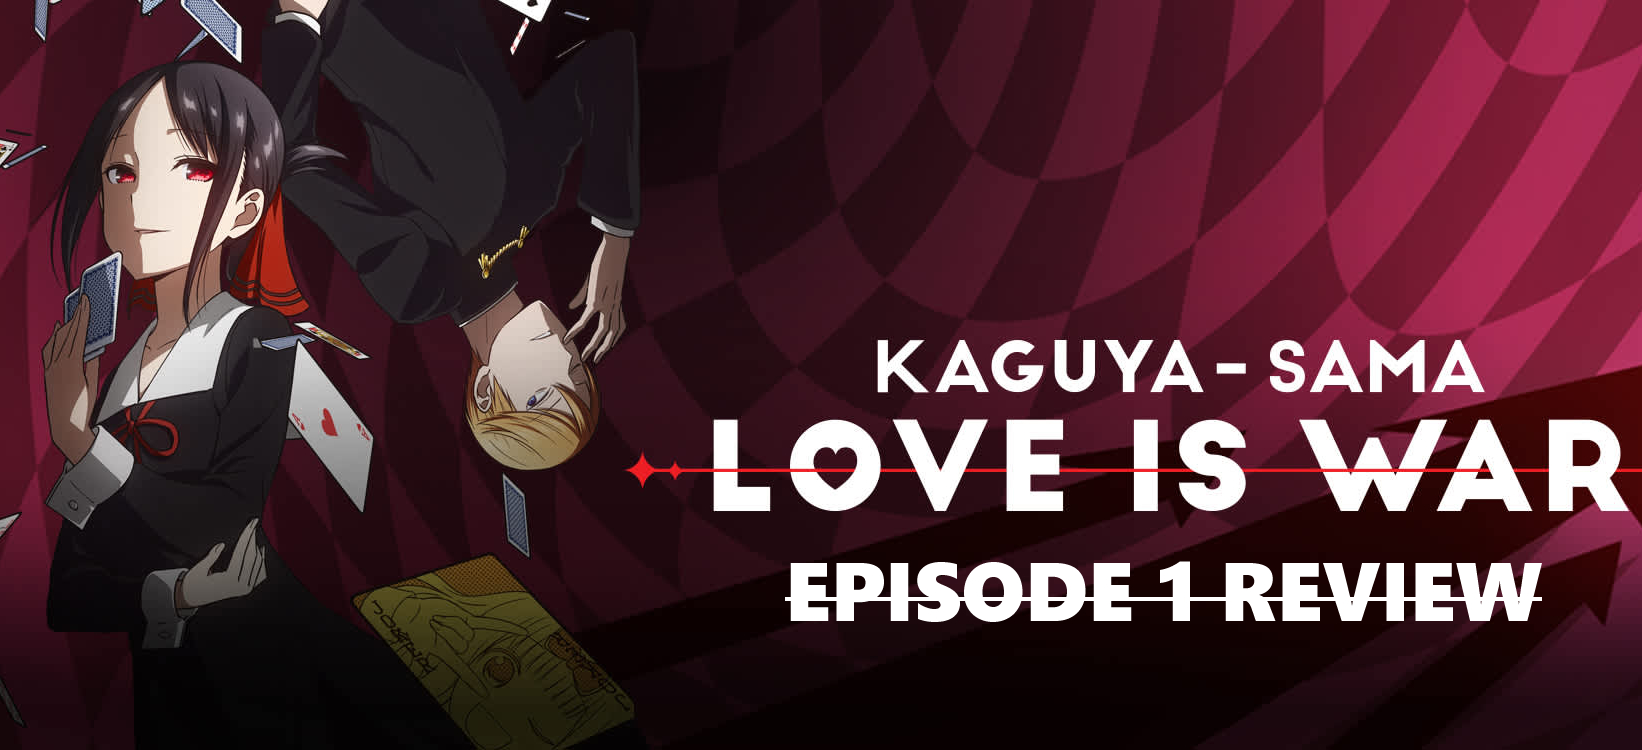 When The Head Fights The Heart – 'Kaguya-sama: Love Is War' Episode 1 Review